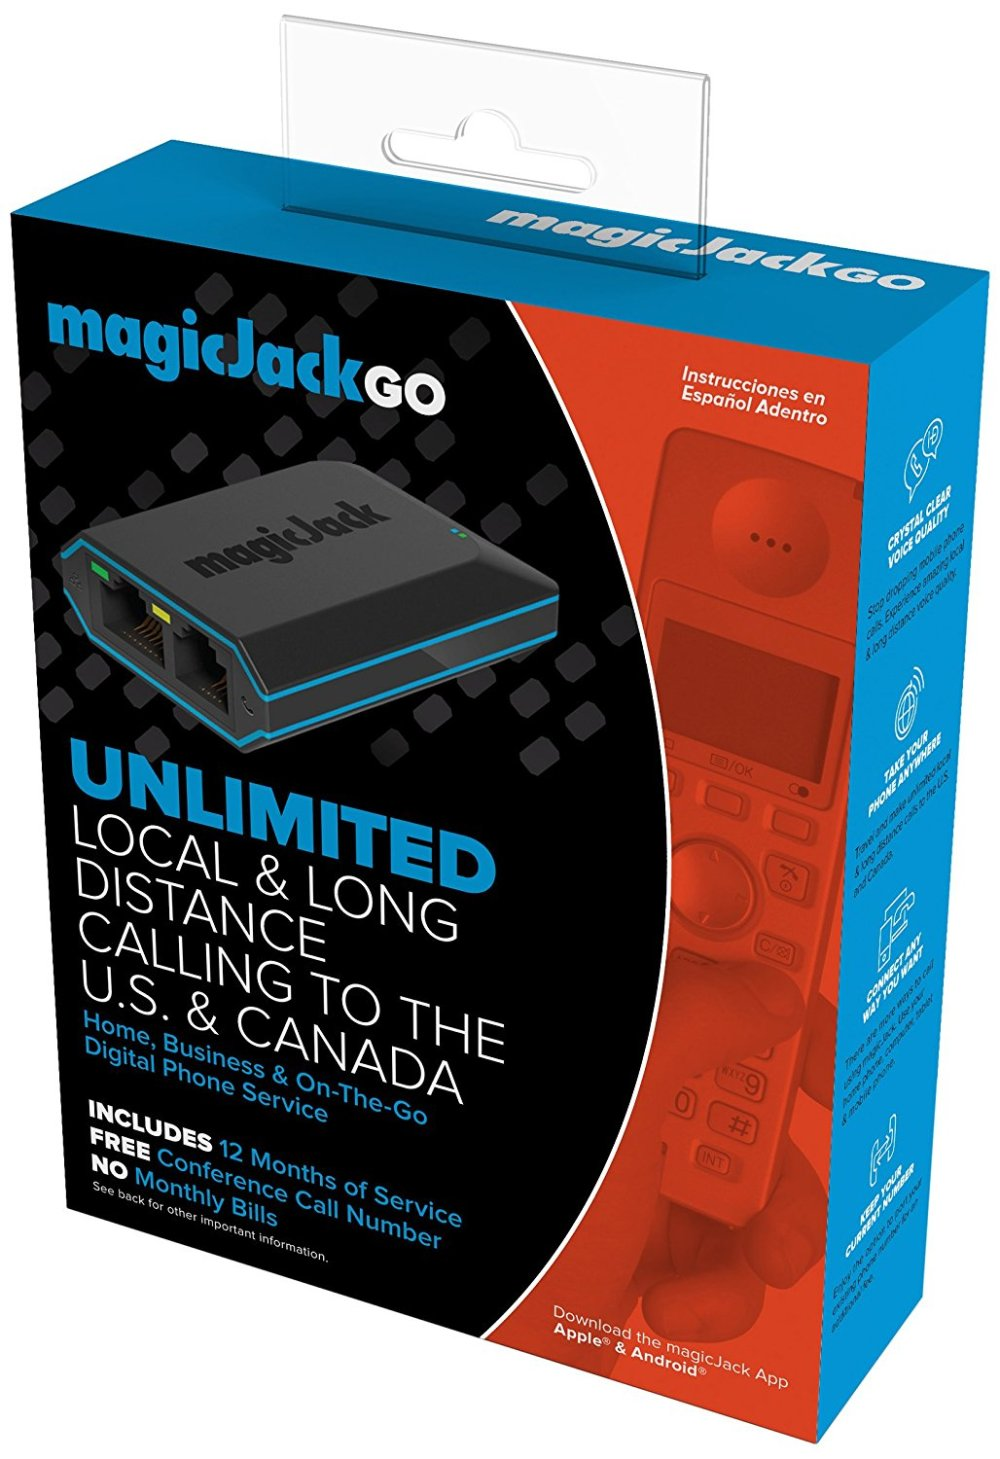 medium resolution of details about magicjack go digital phone service includes 12 months of free service new